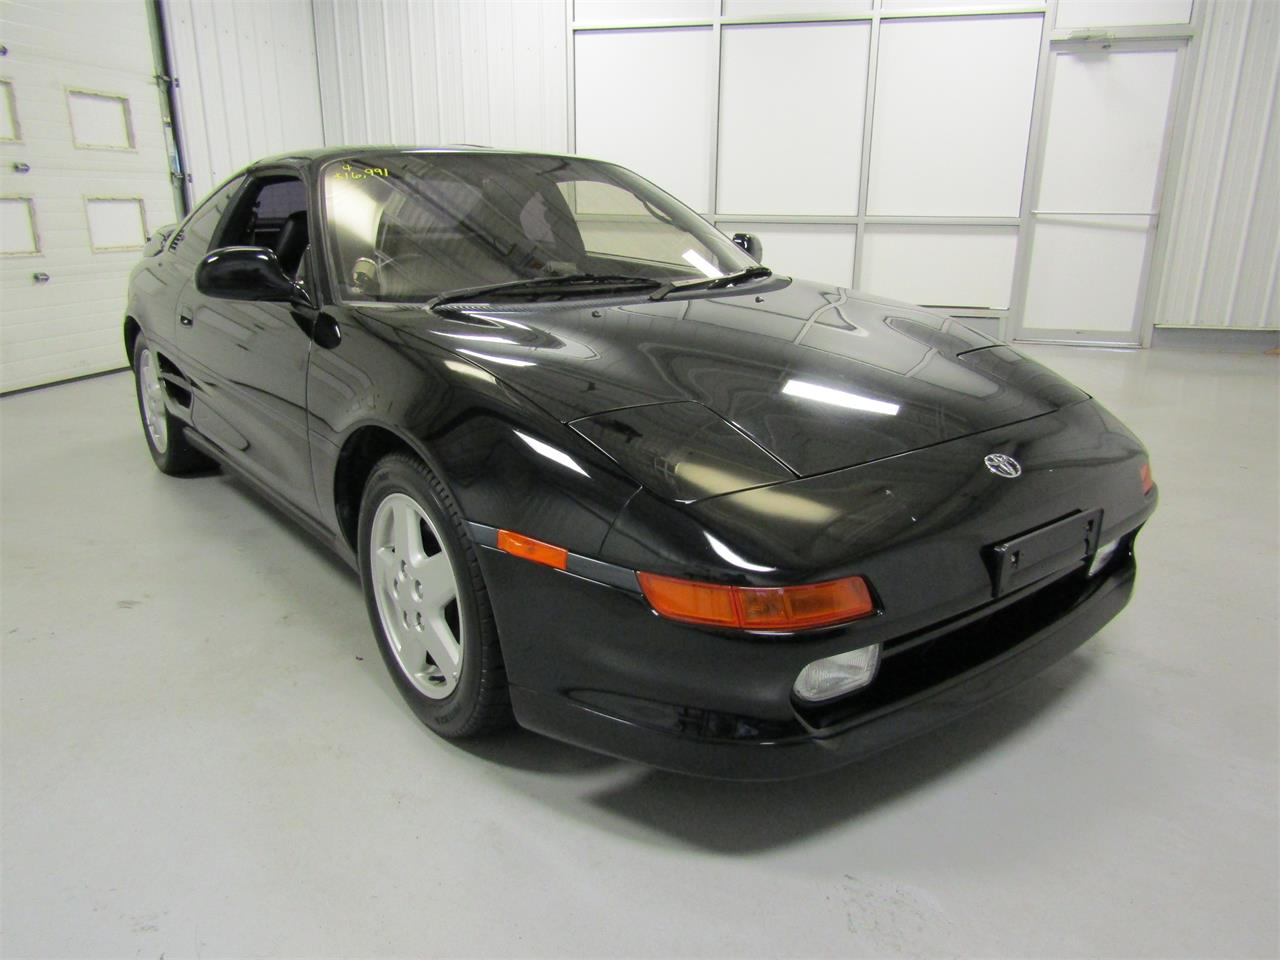 Large Picture of '92 Toyota MR2 - $16,991.00 Offered by Duncan Imports & Classic Cars - OLED